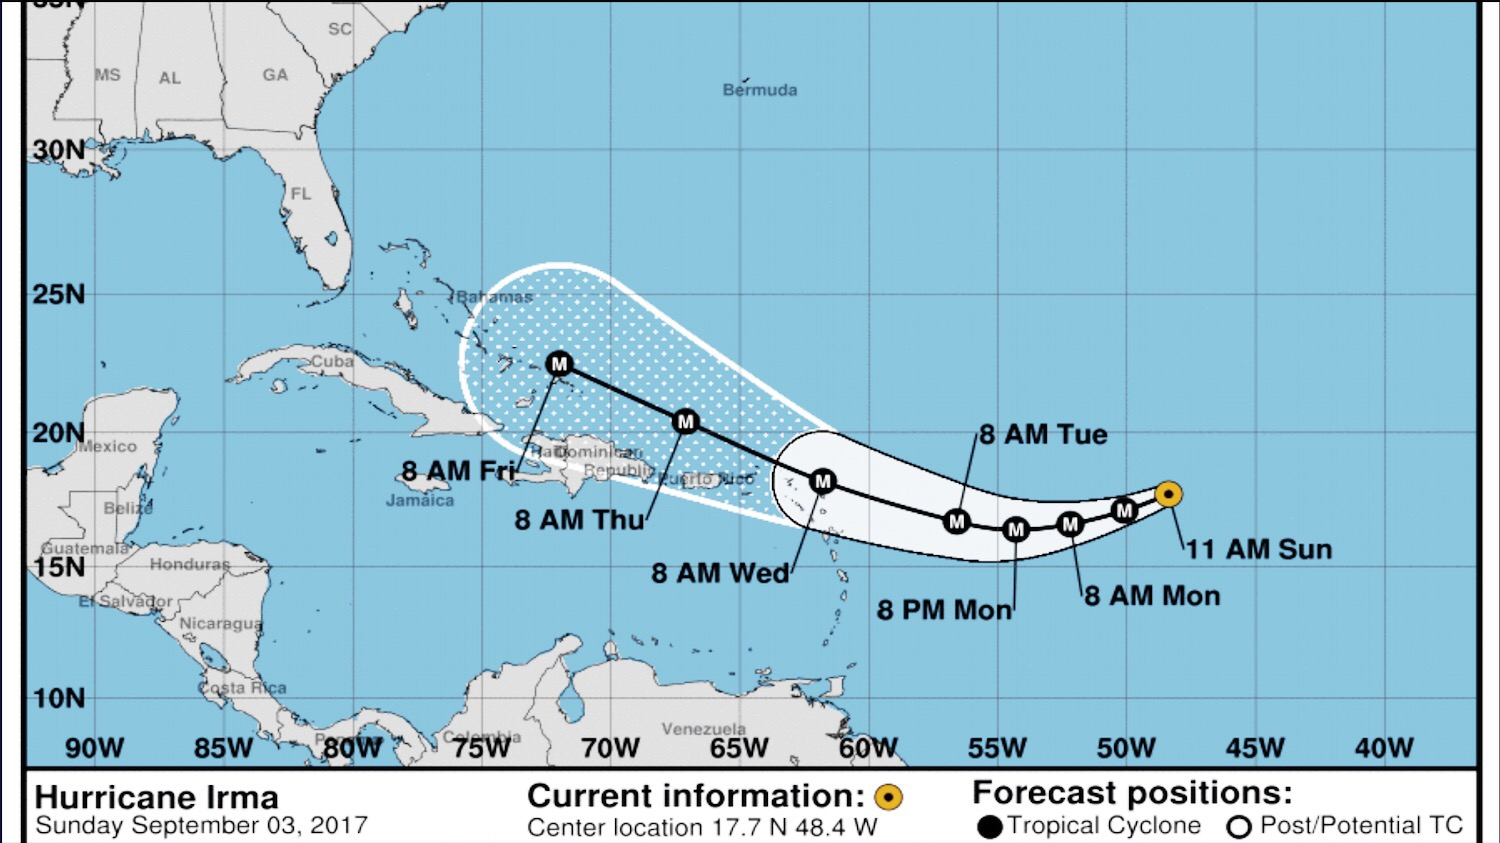 The track of hurricane Irma in the days before she hit. Updating my hurricane kit and what I learnt after hurricane Irma